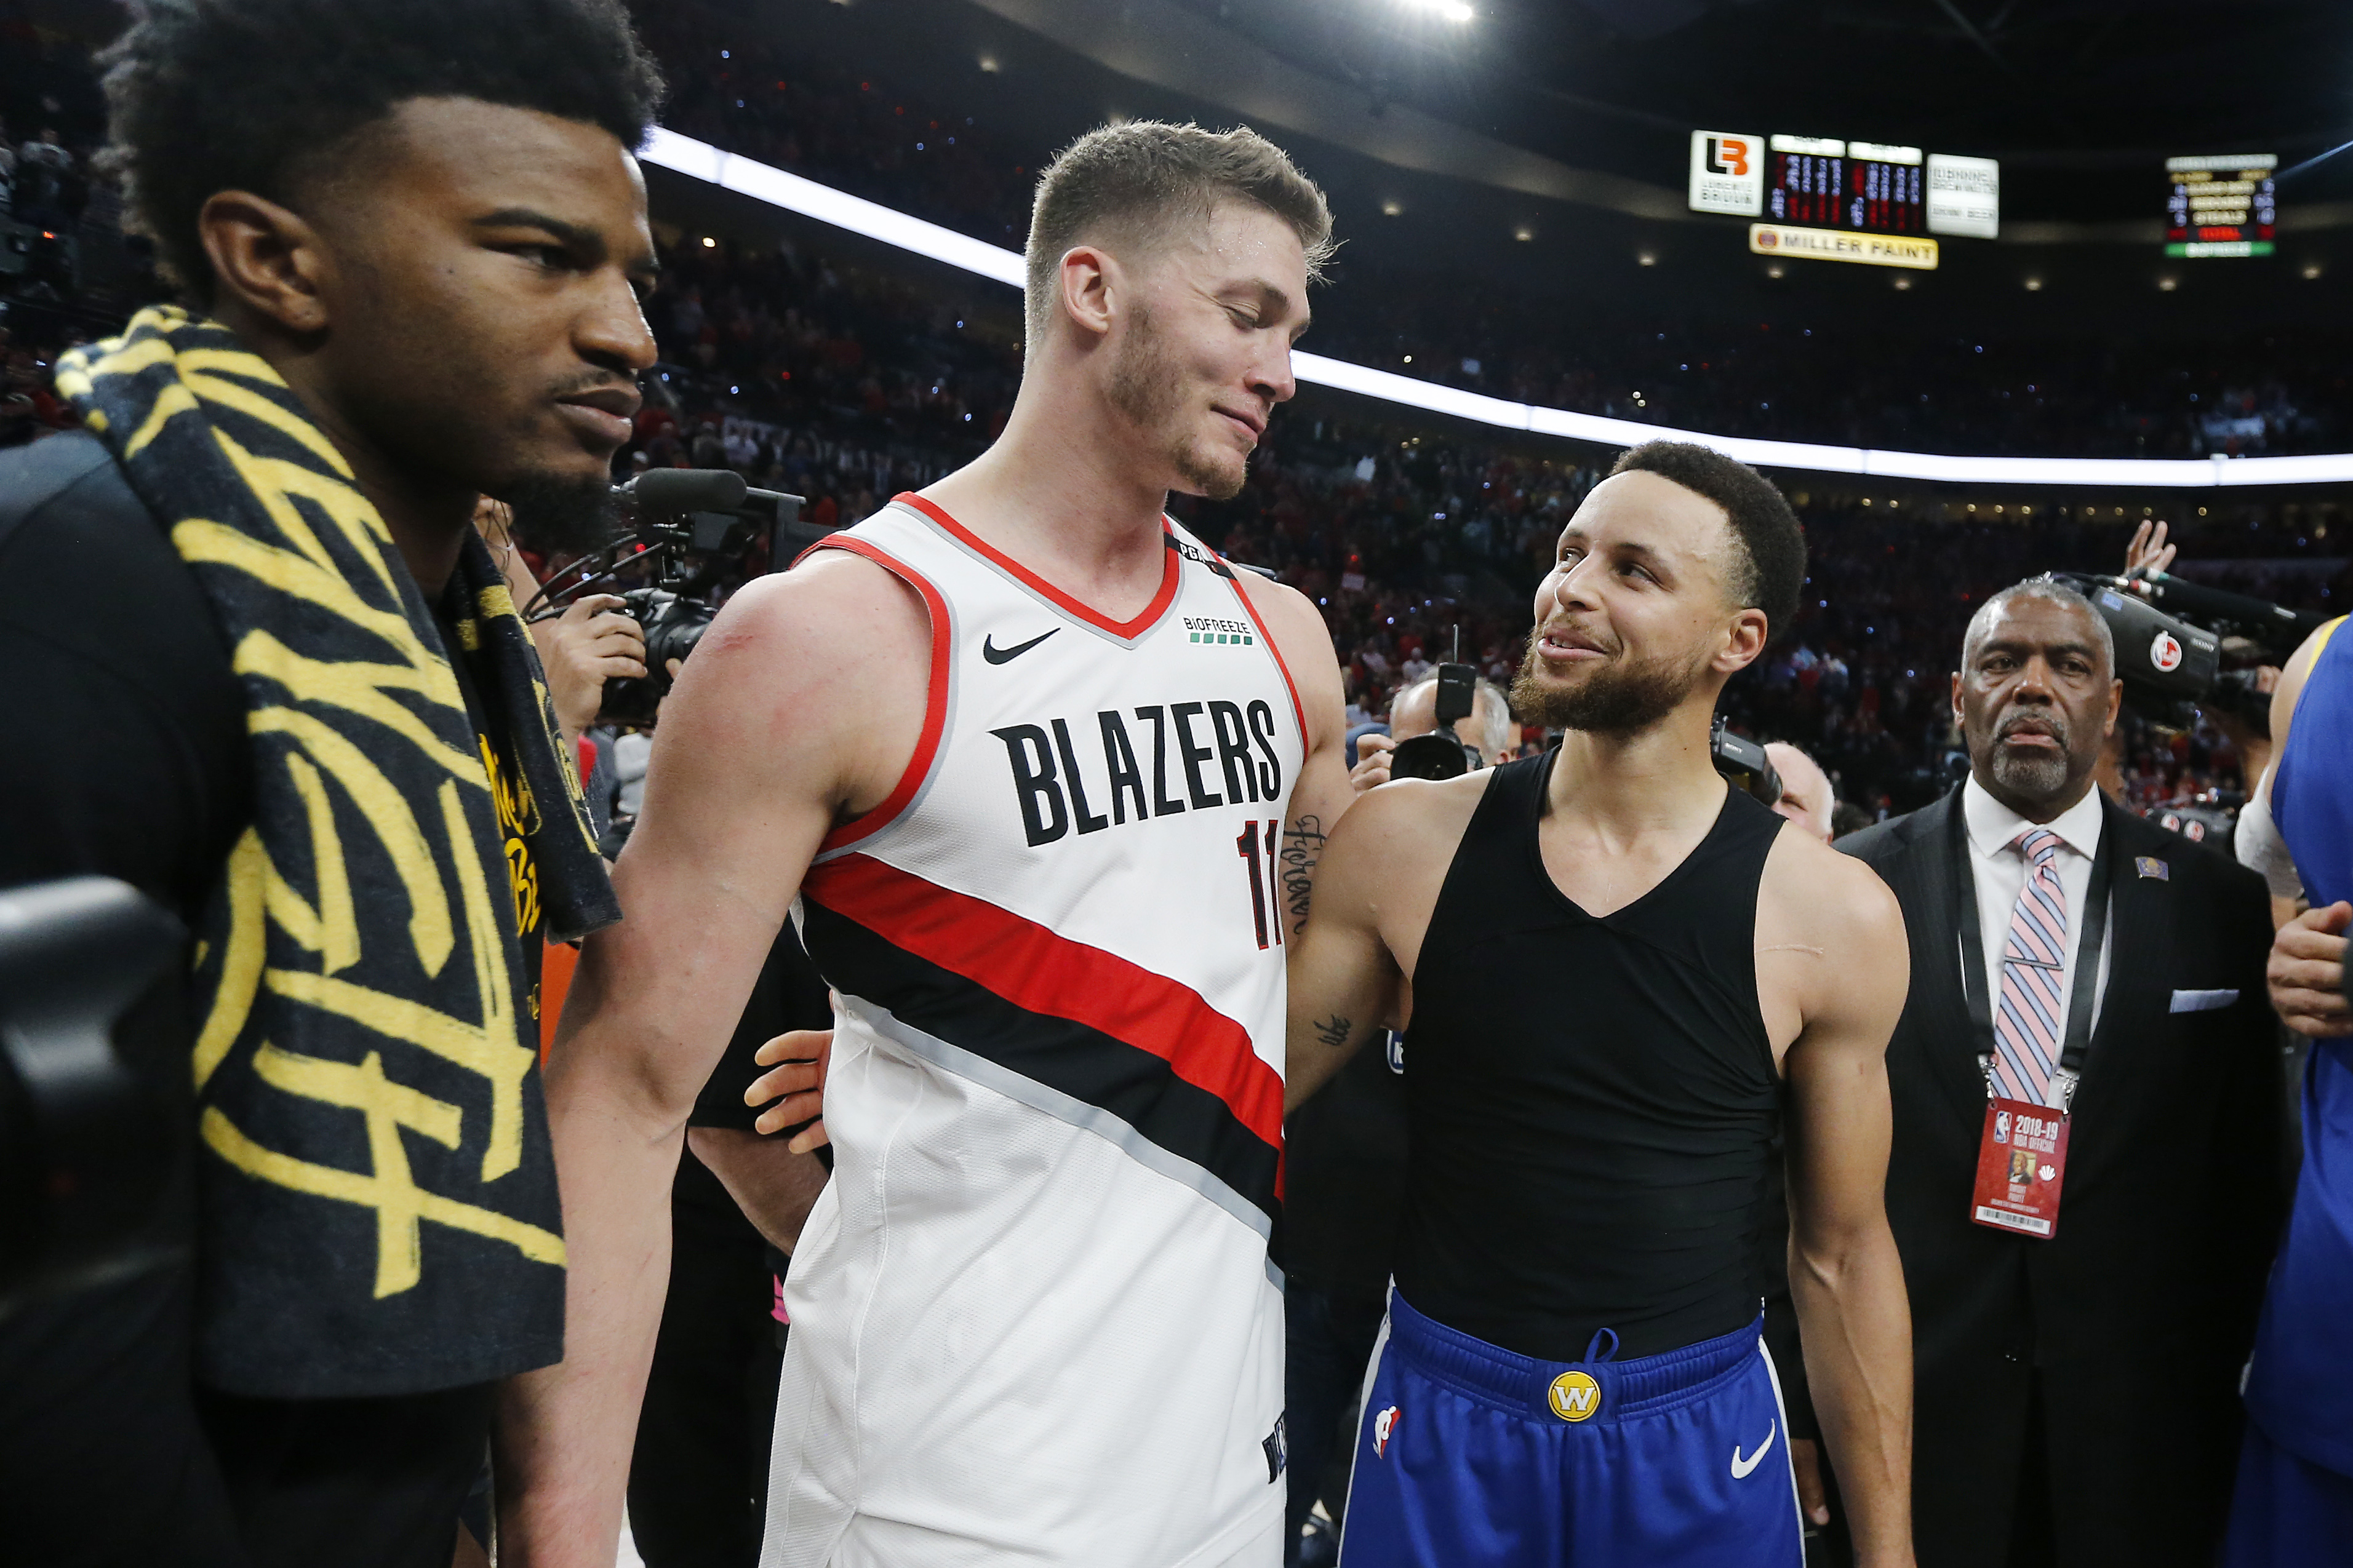 That Blazers-Warriors series was drunk